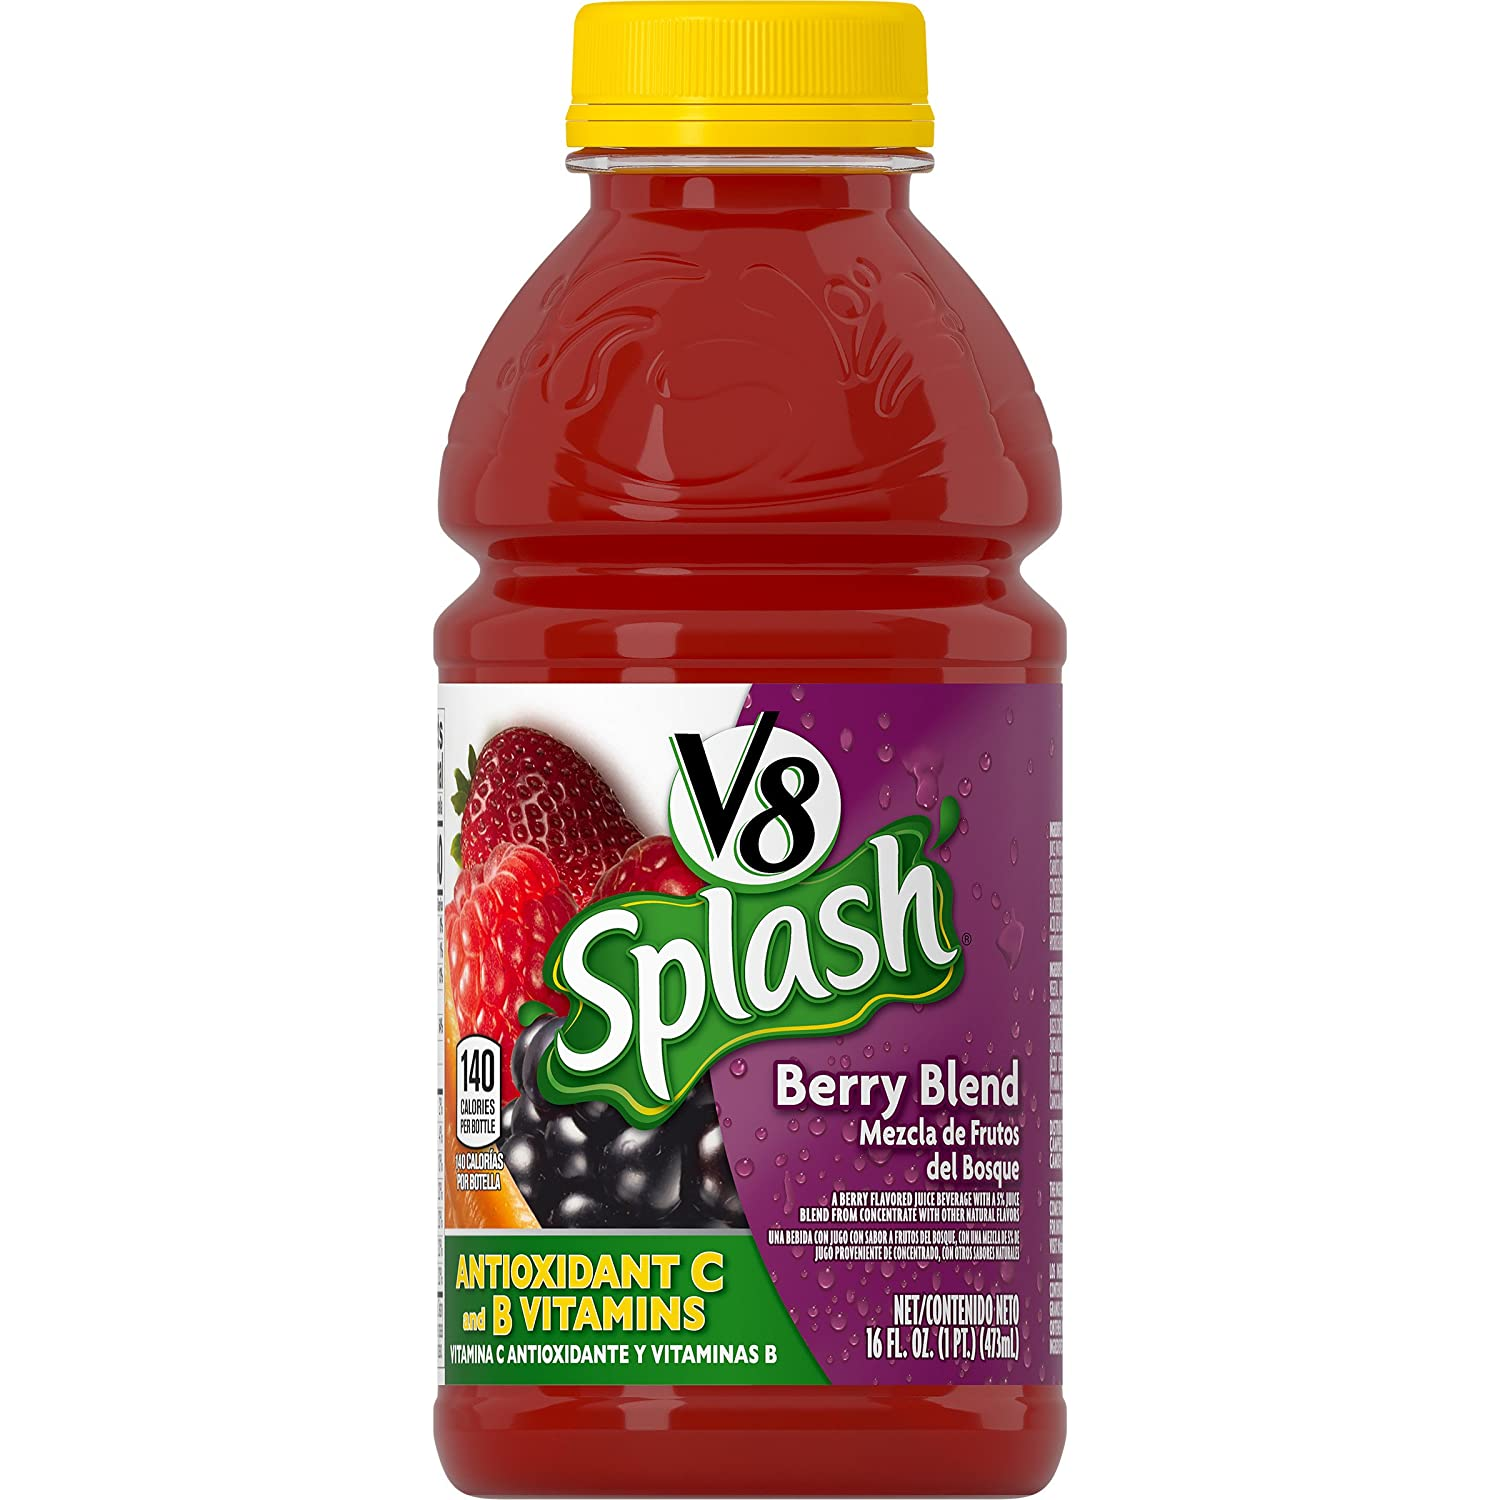 Amazon.com : V8 Splash Berry Blend, 16 oz. Bottle (Pack of 12) : Grocery & Gourmet Food